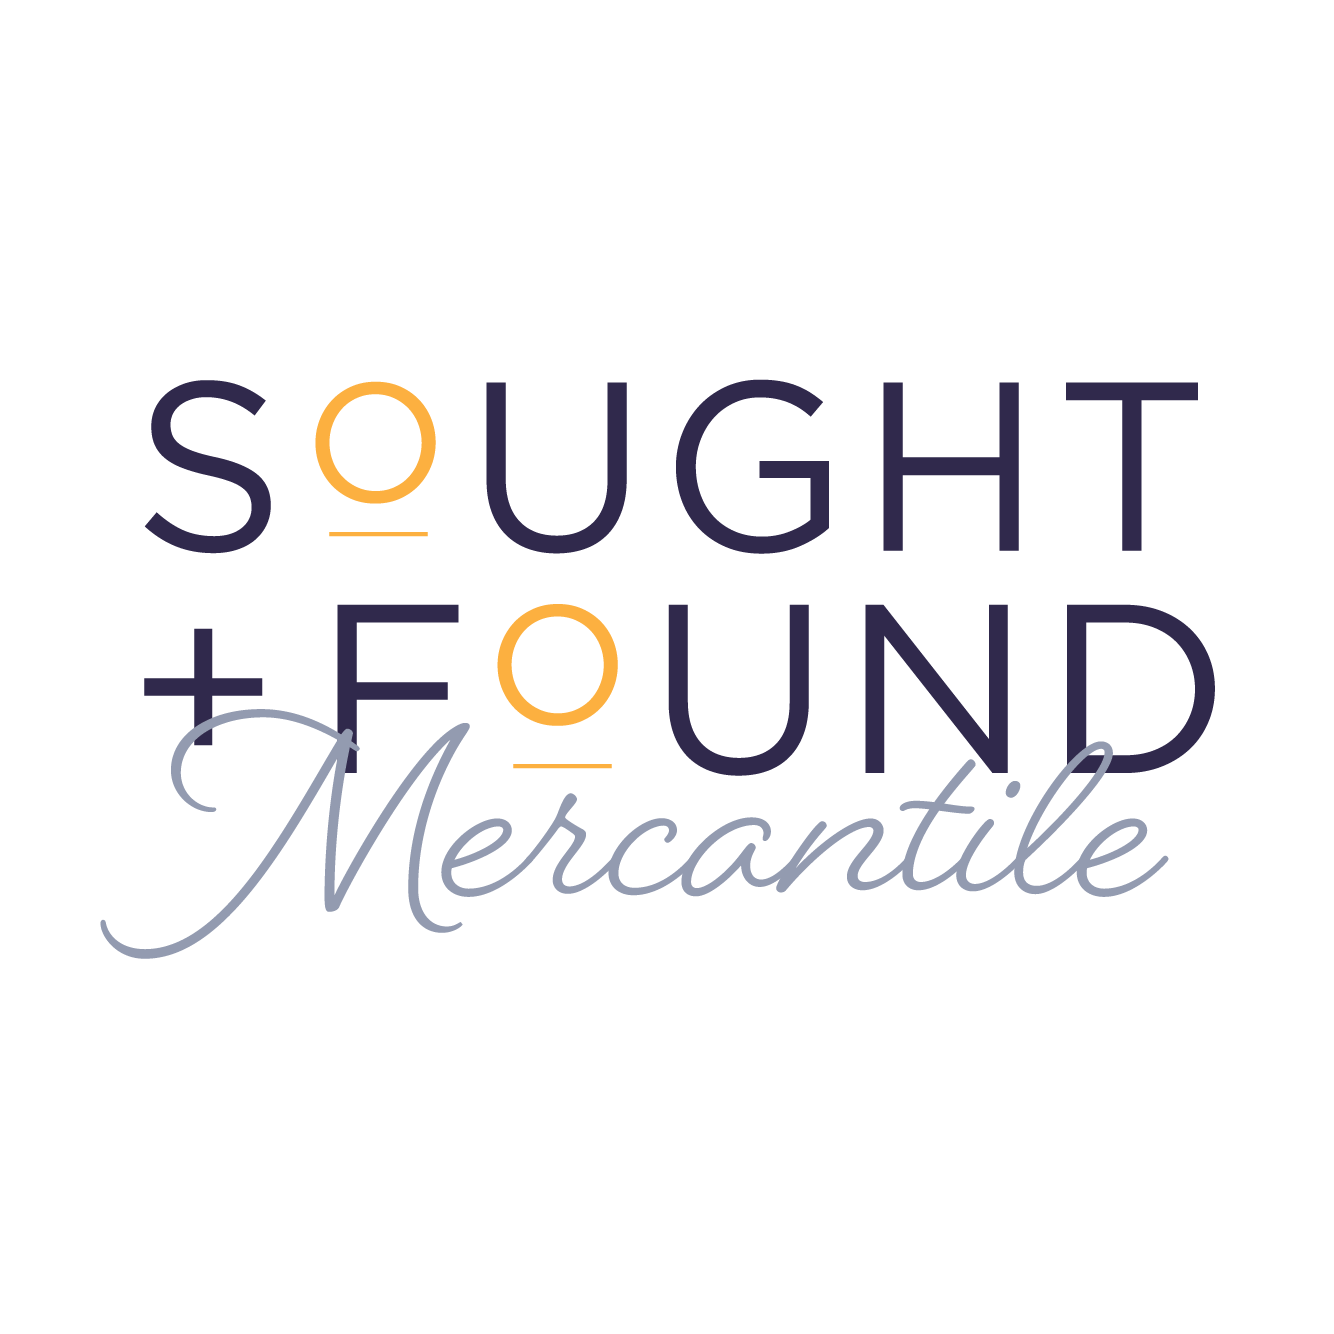 Sought + Found Mercantile logo